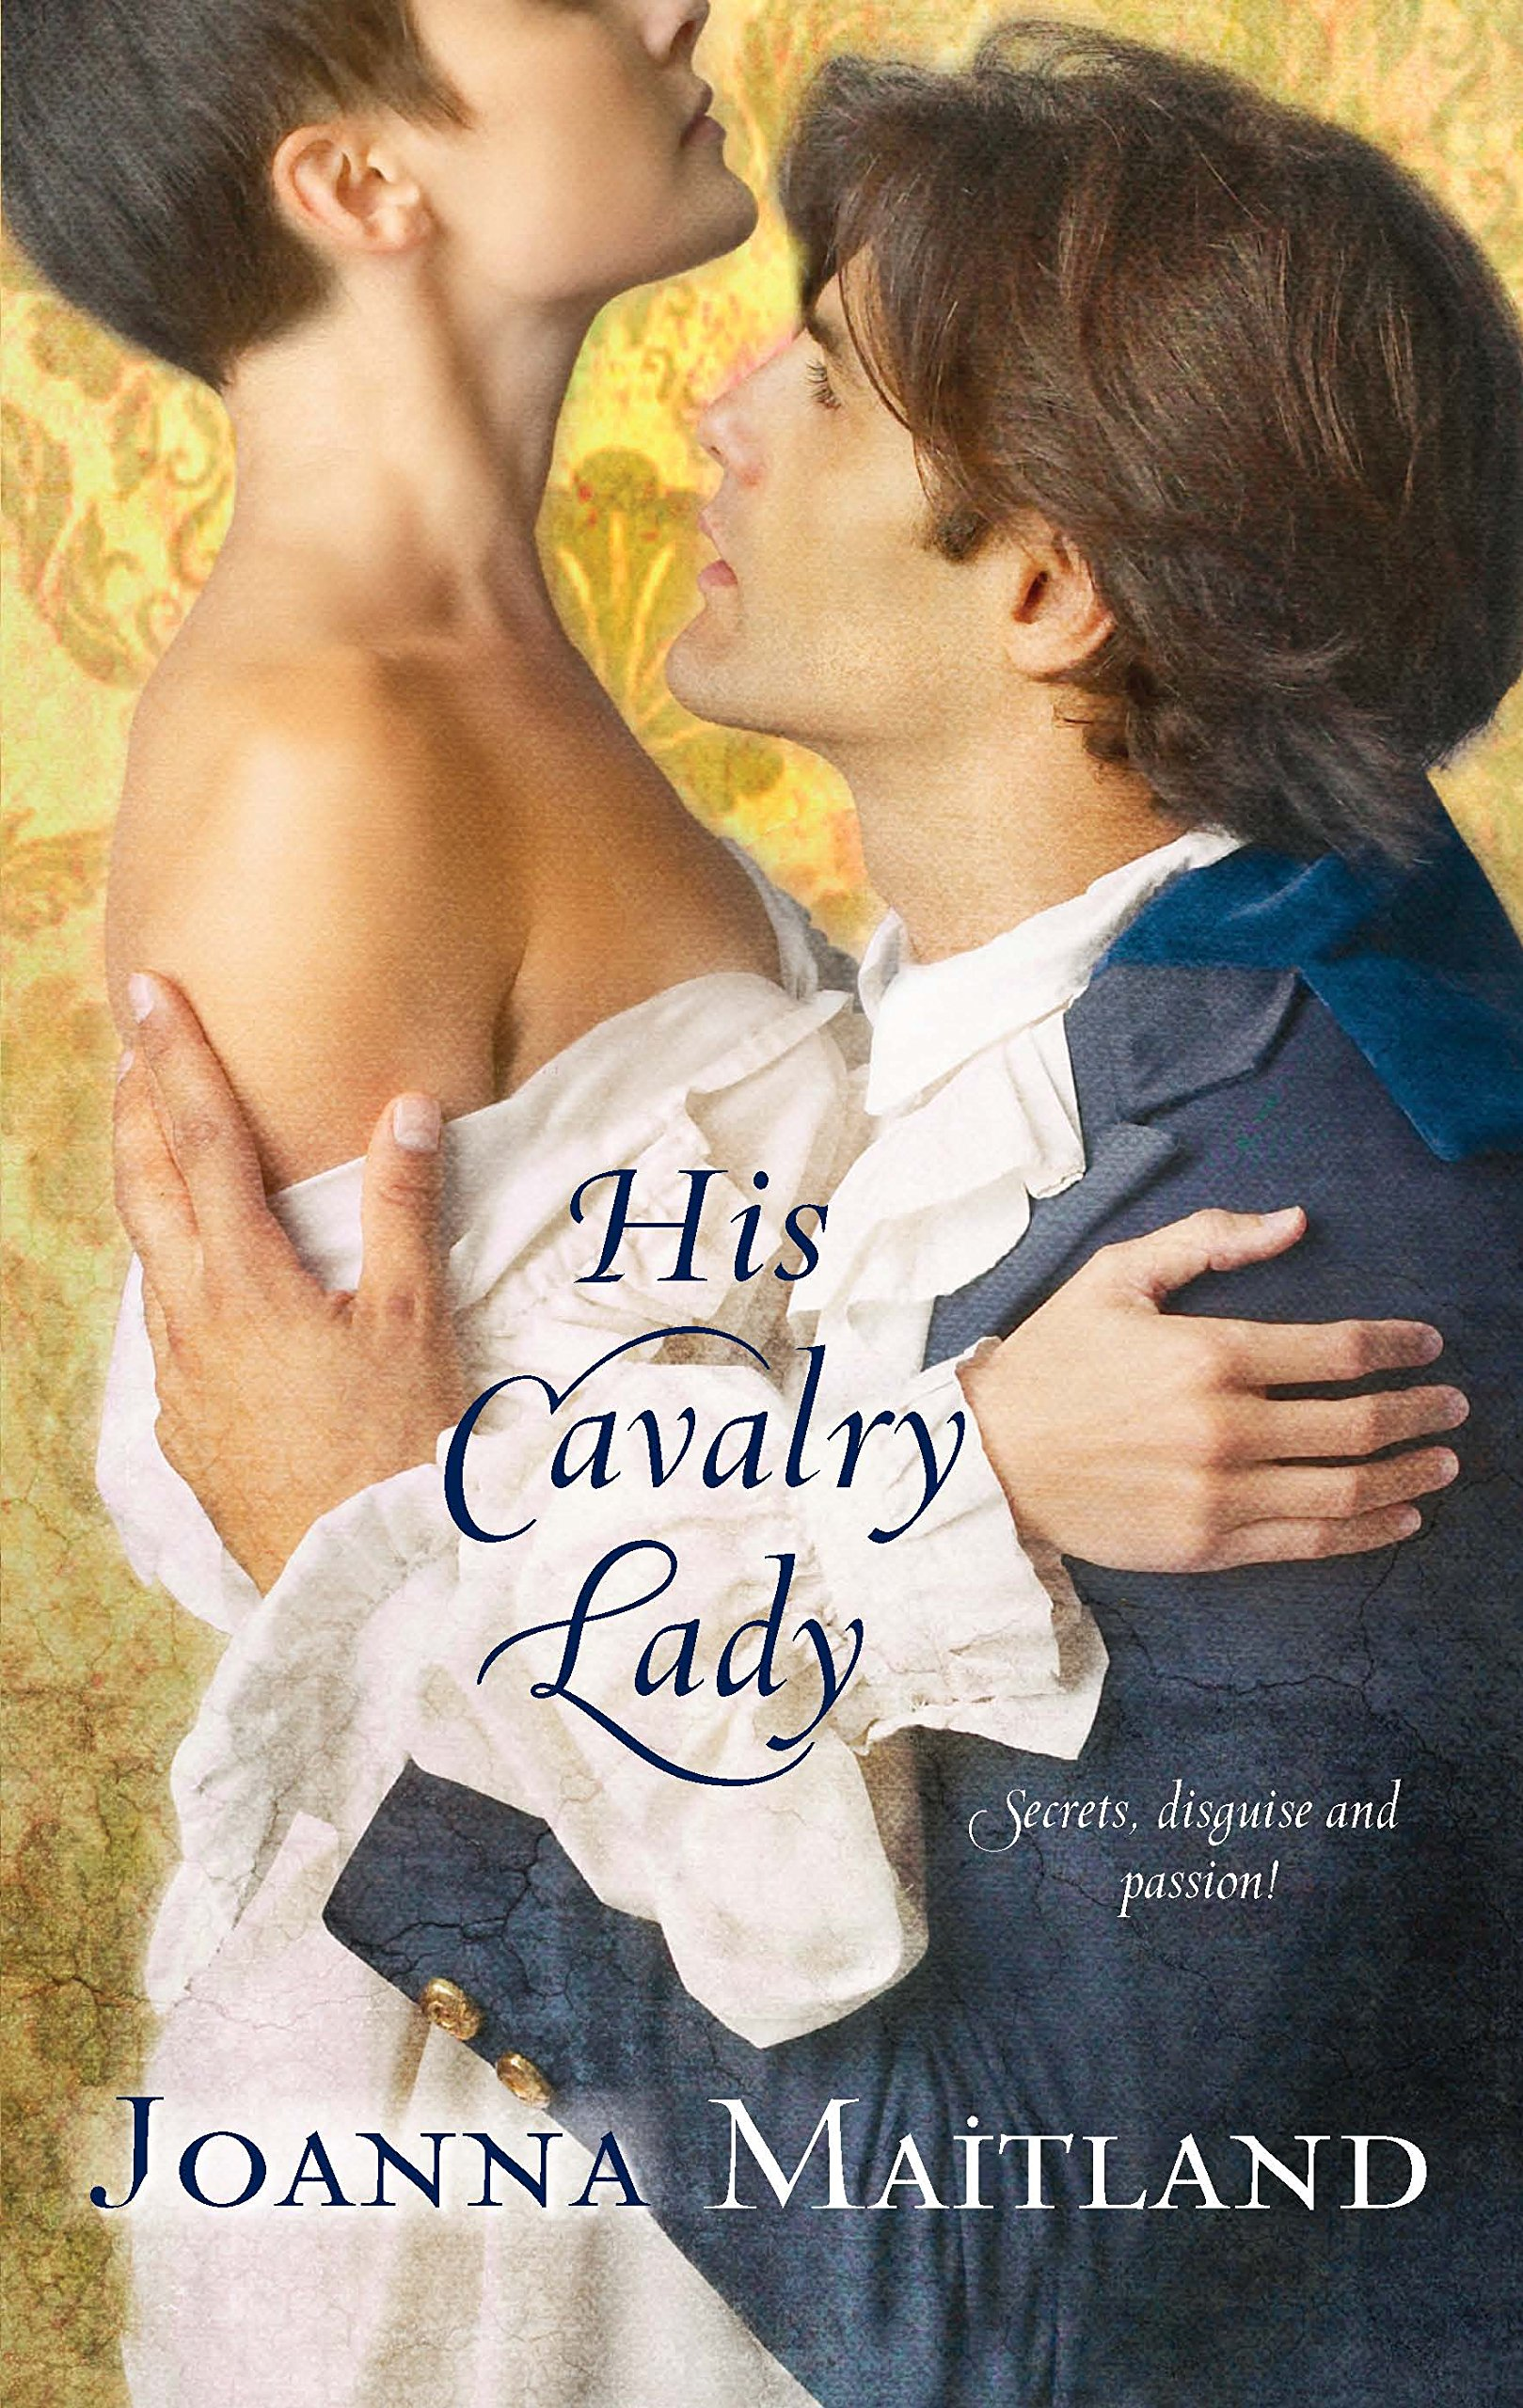 Download His Cavalry Lady PDF ePub fb2 book